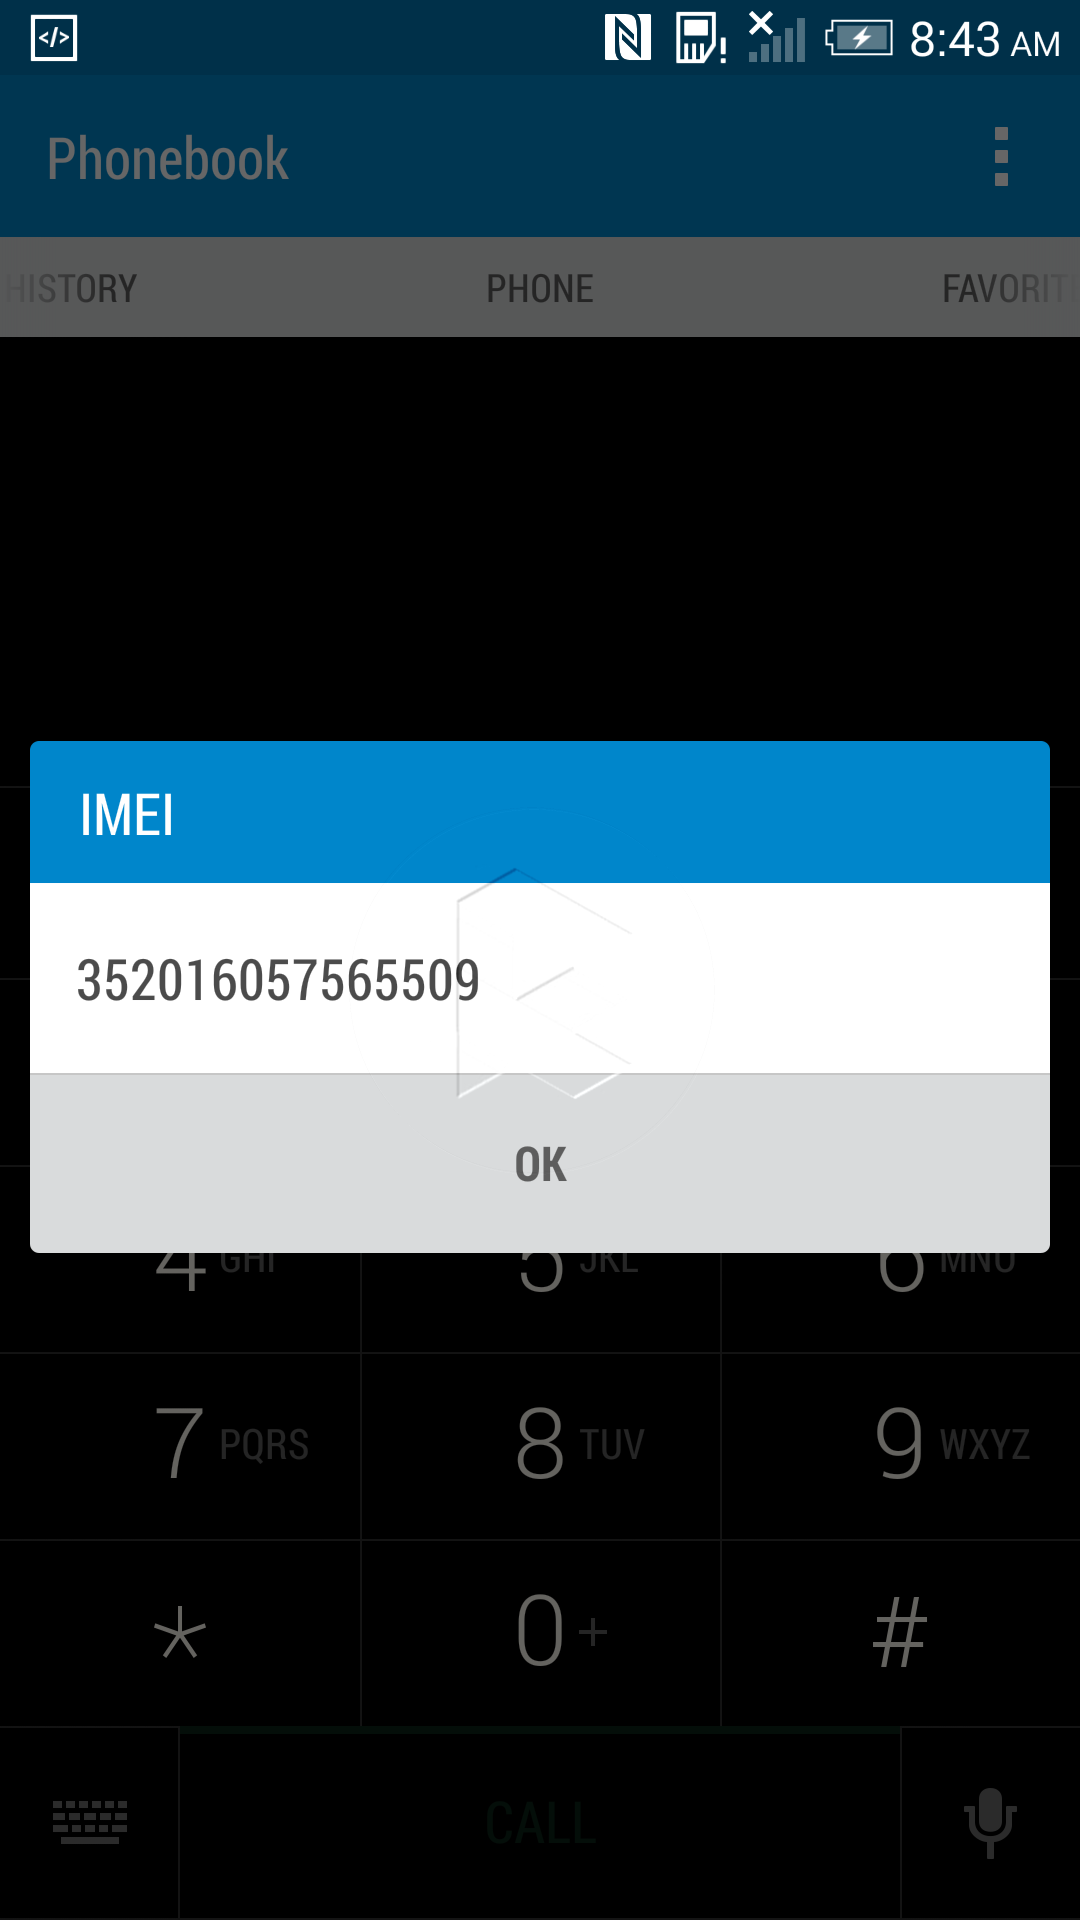 HTC_IMEI_Done.png